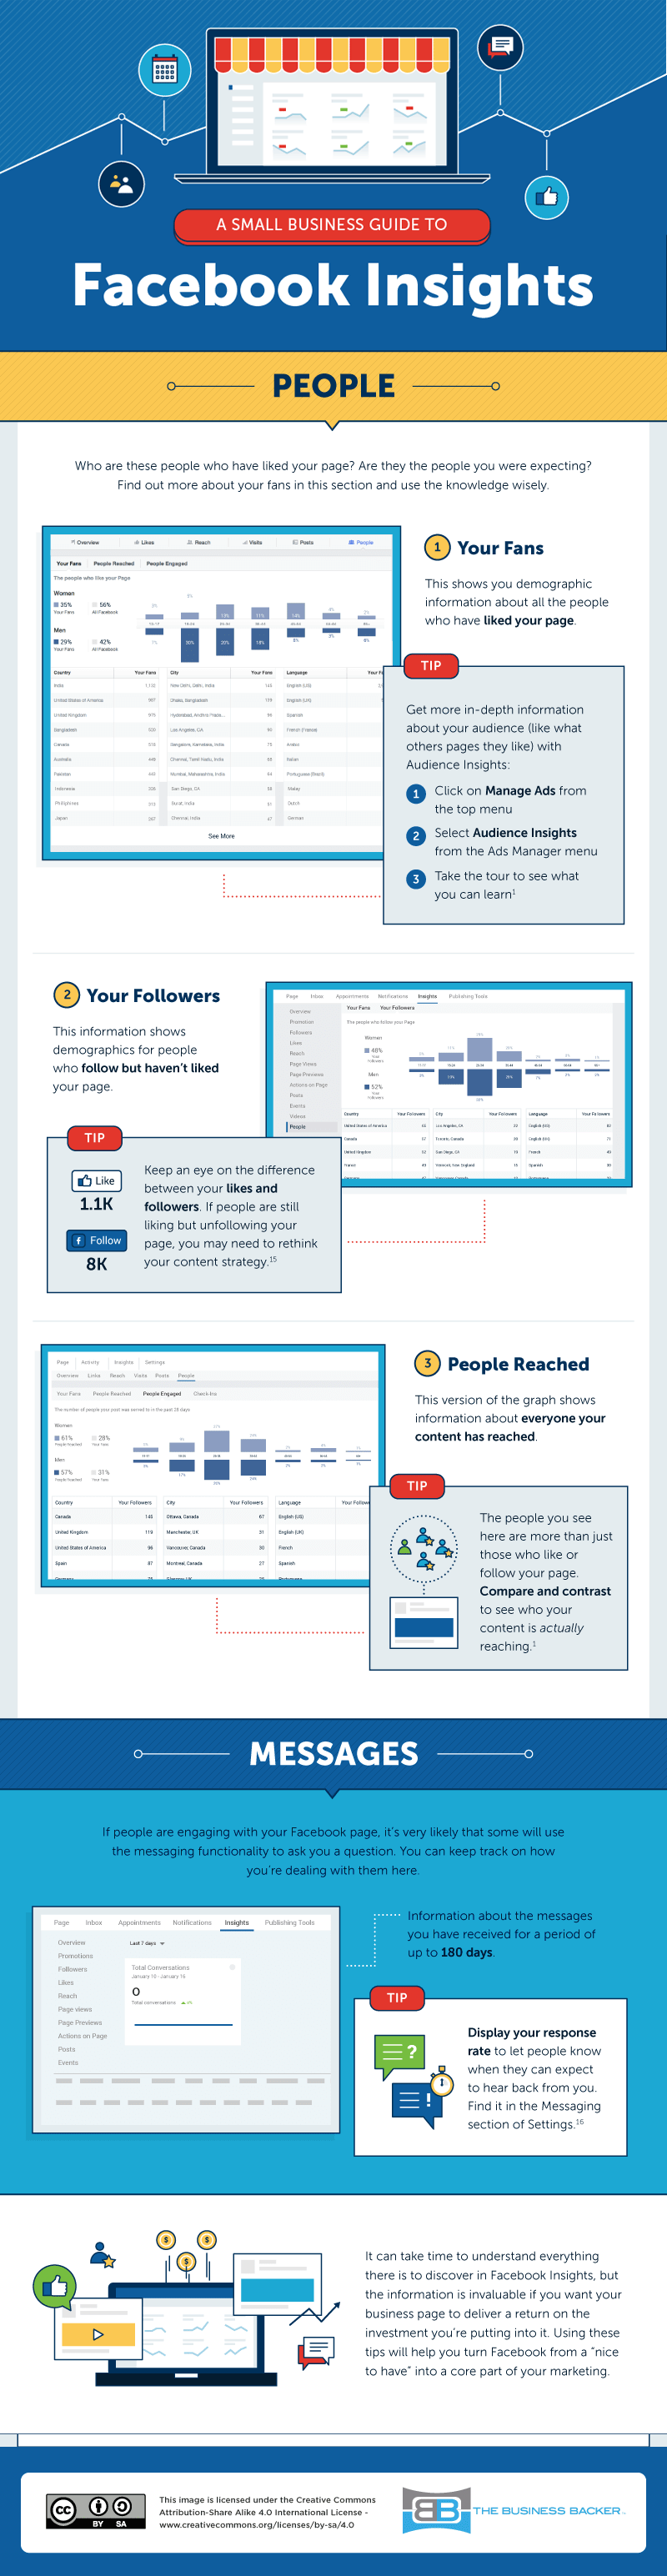 Facebook Insights Infographic on Understanding your Fans in People Insights